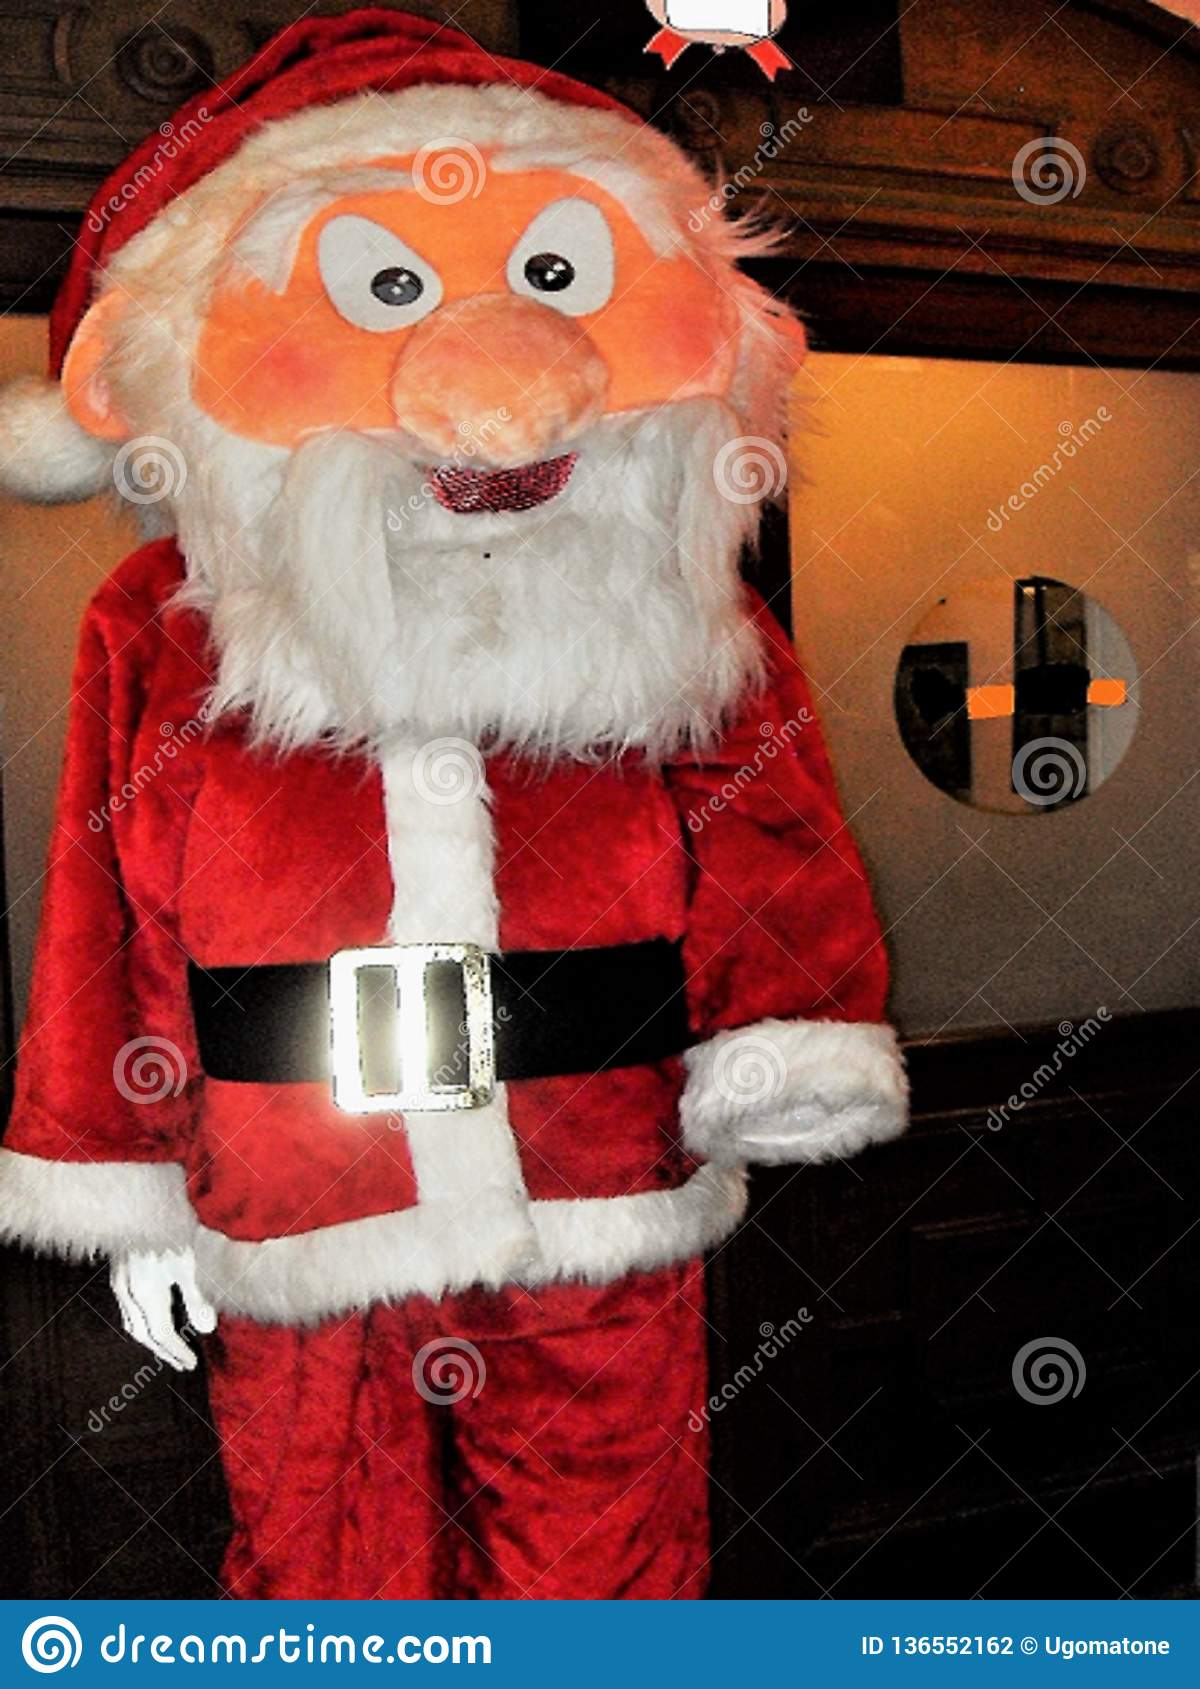 Santa Claus doll in full size